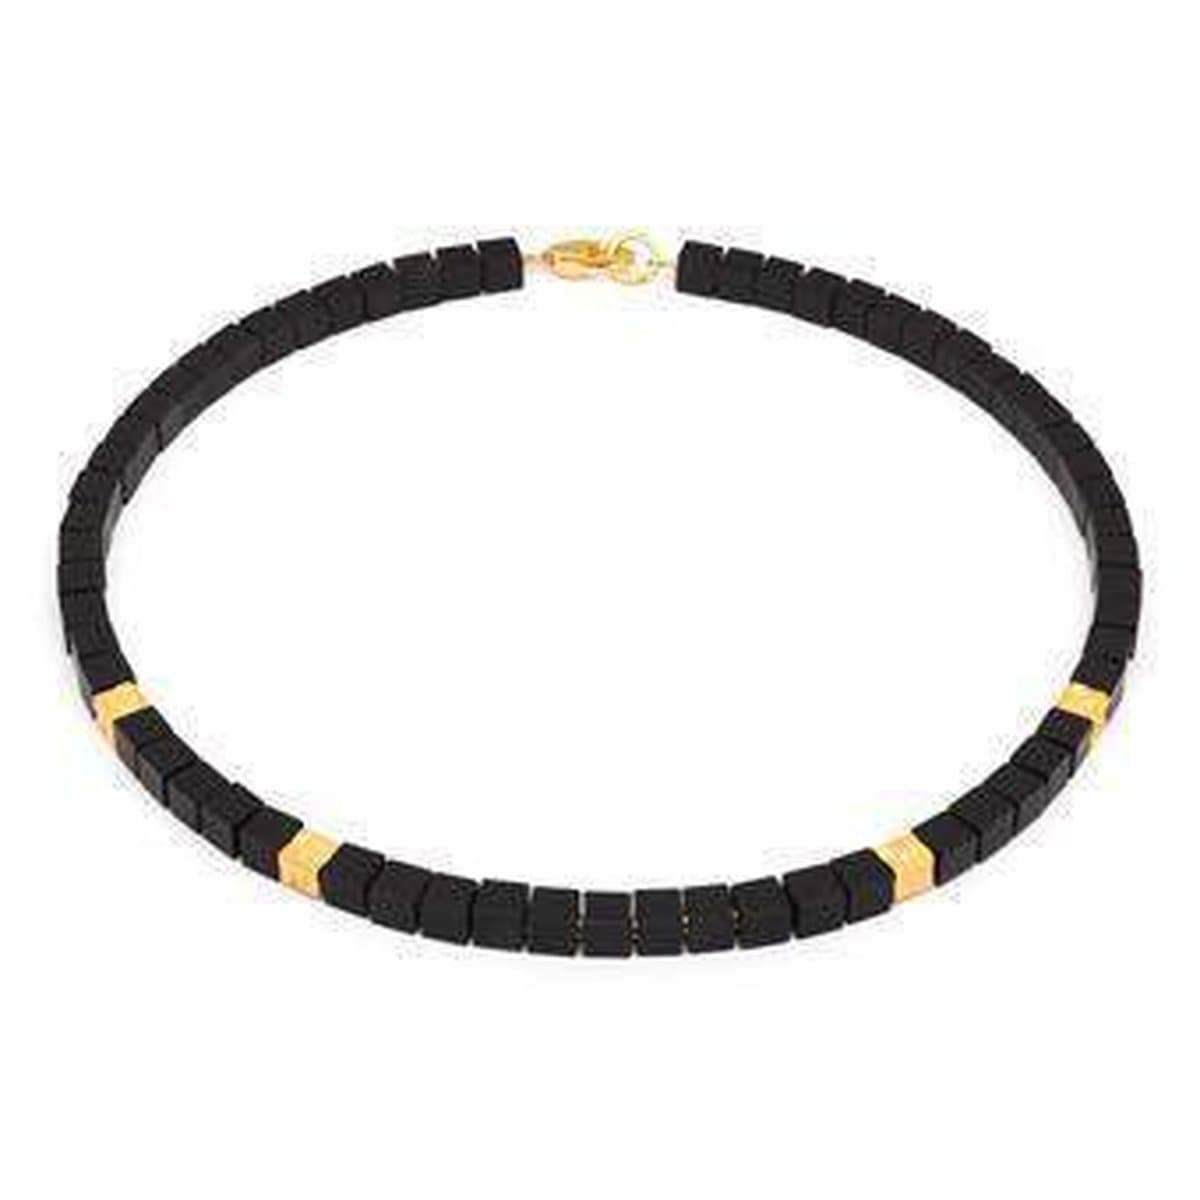 Cube Onyx Necklace - 84481896-Bernd Wolf-Renee Taylor Gallery